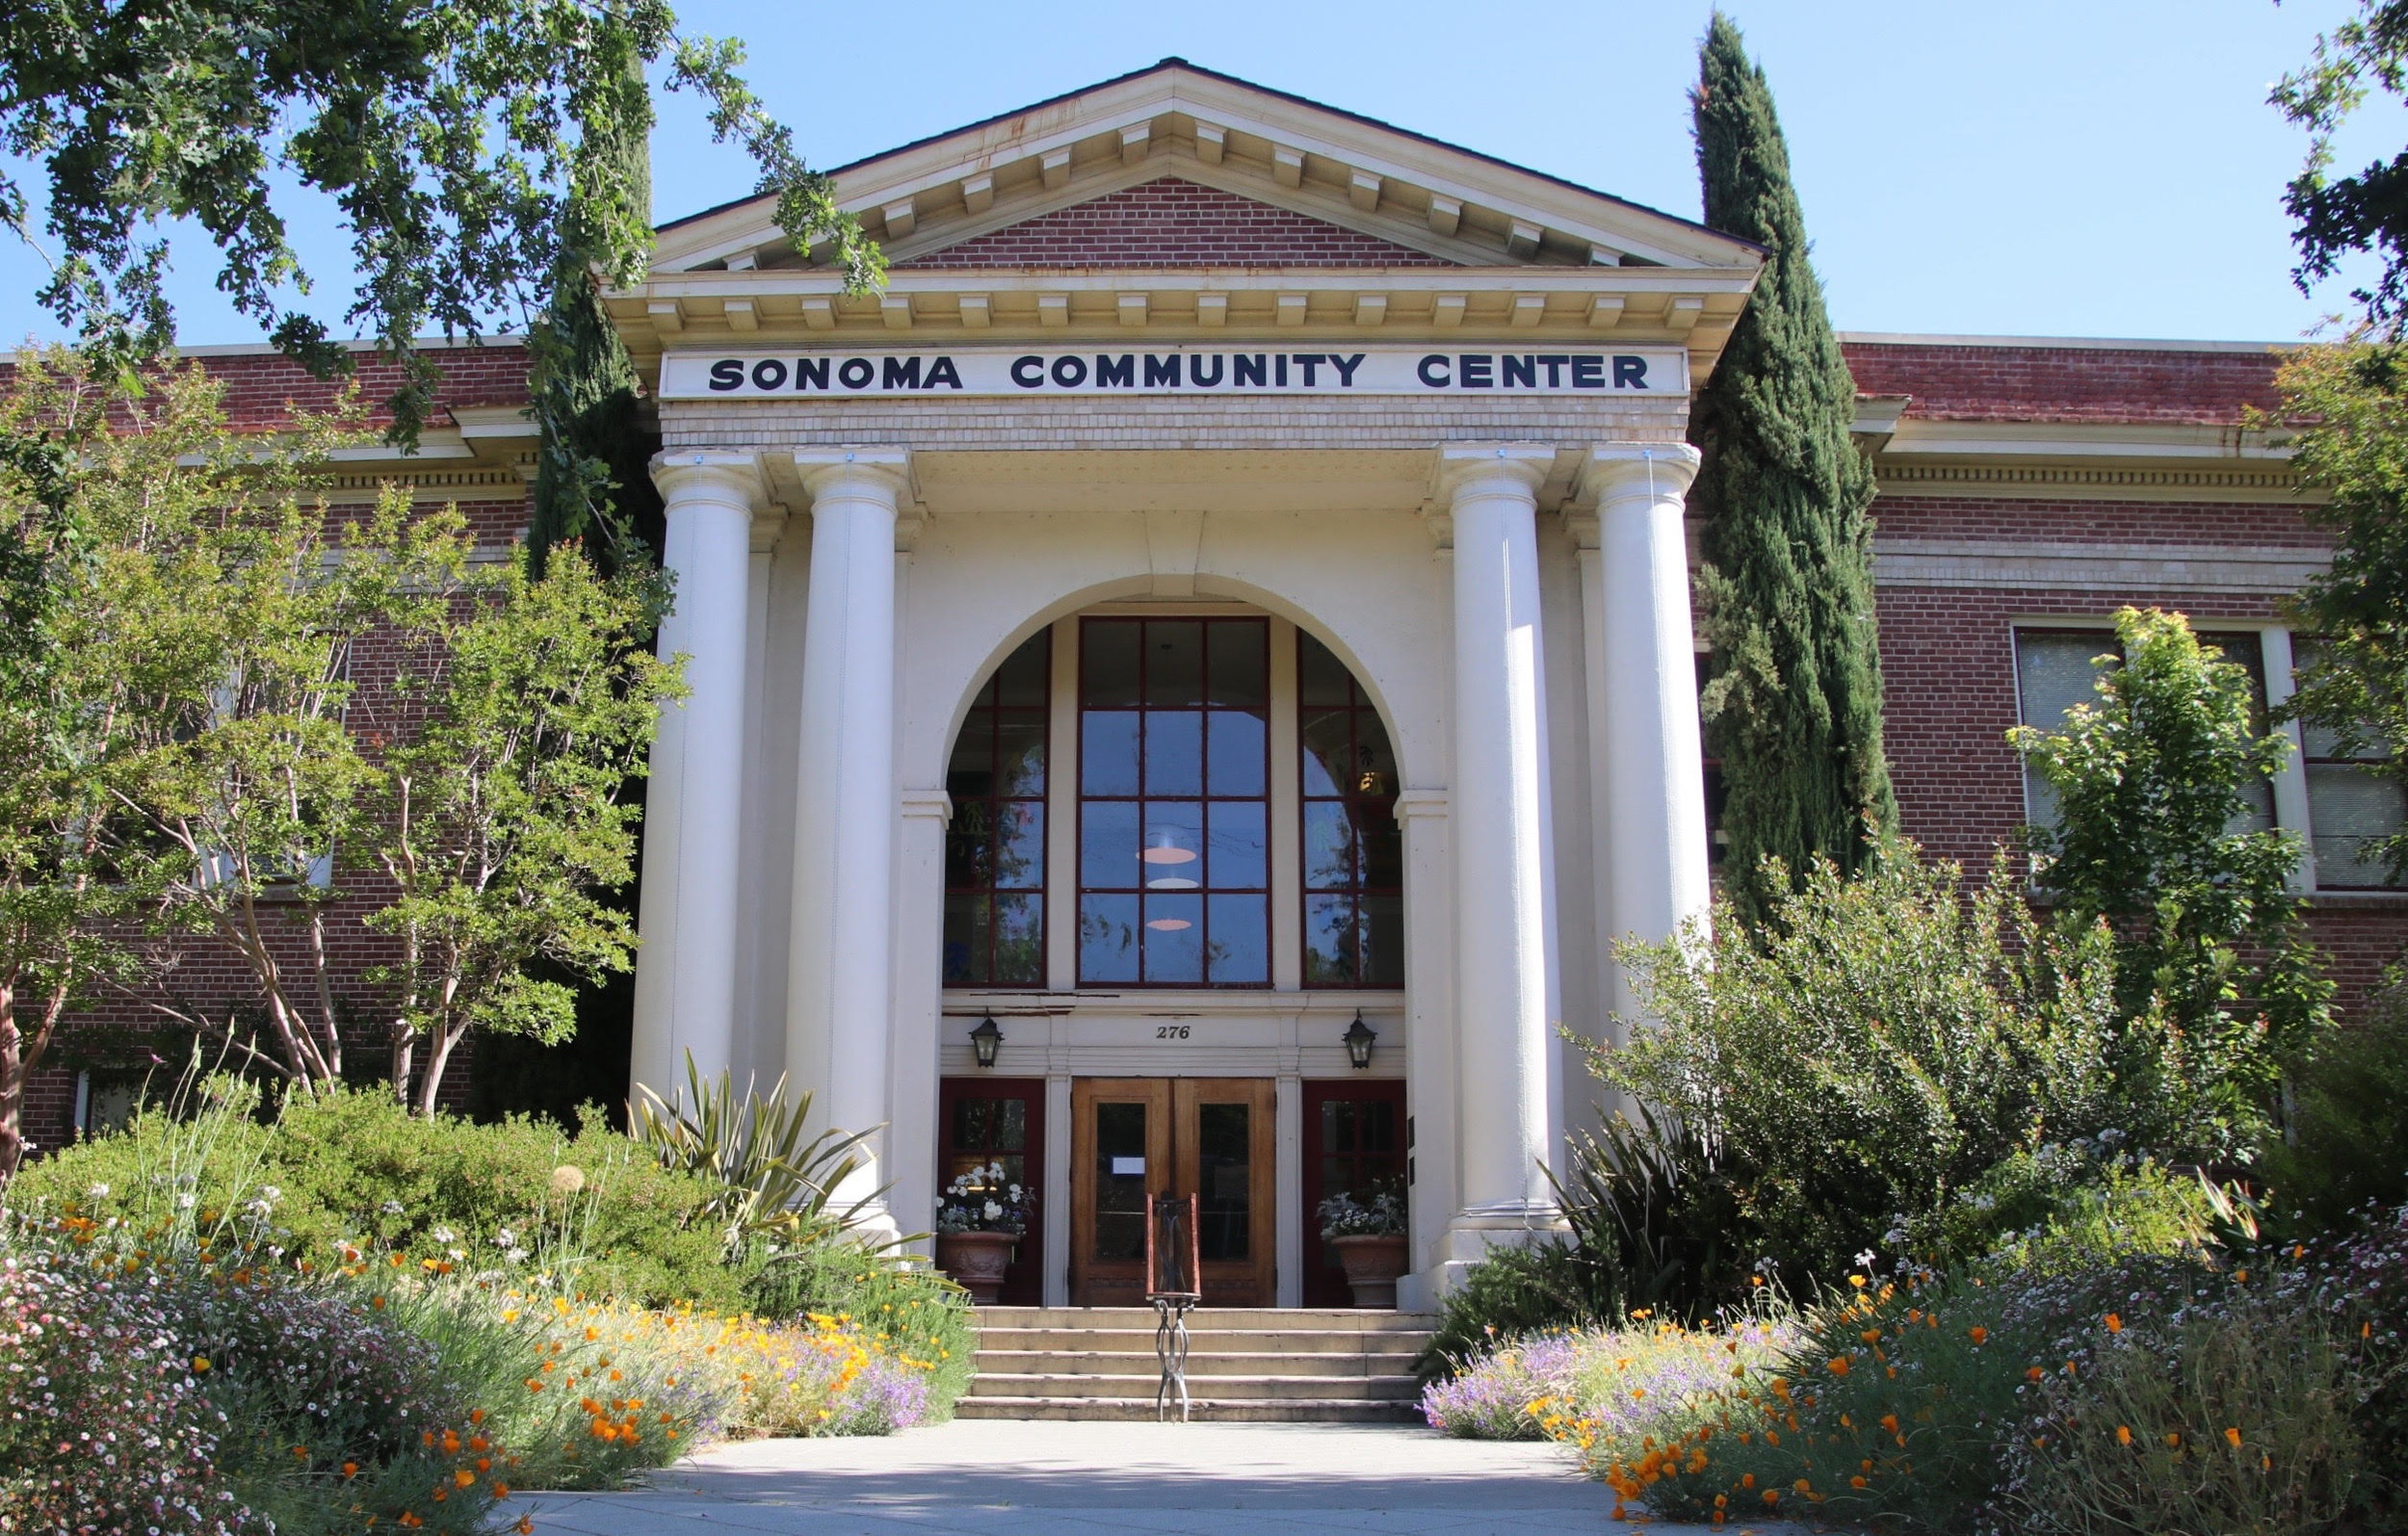 Sonoma Communmity Center.jpg